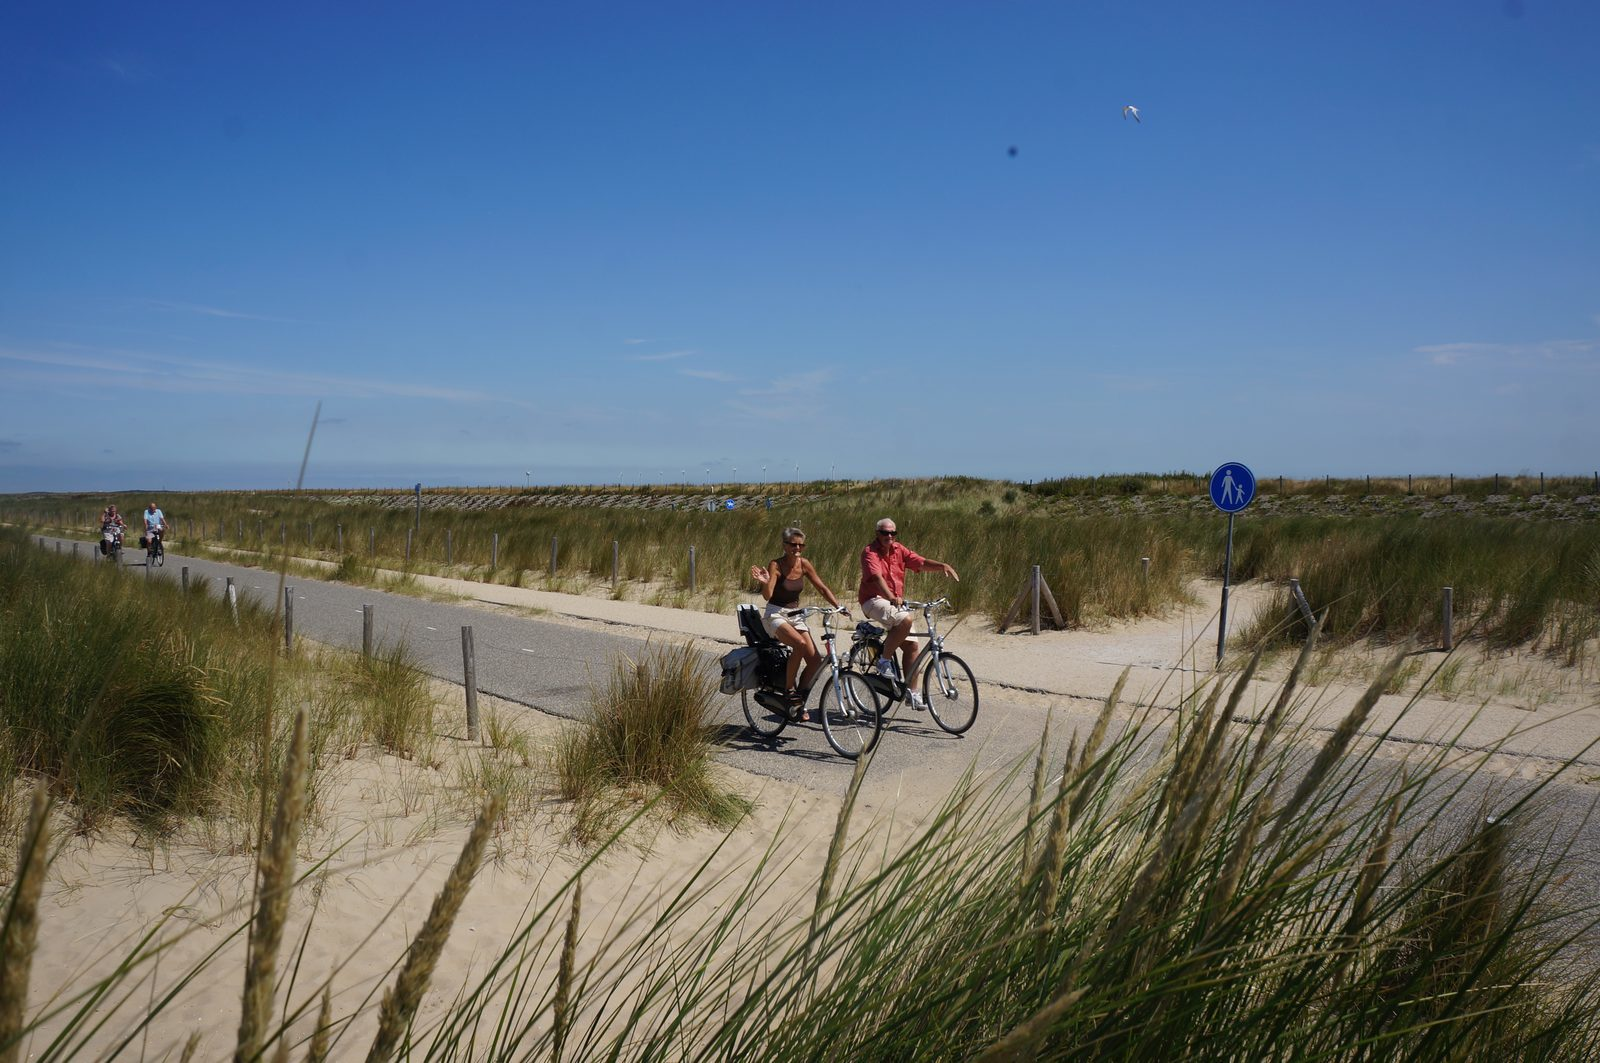 Bicycles at the dunes